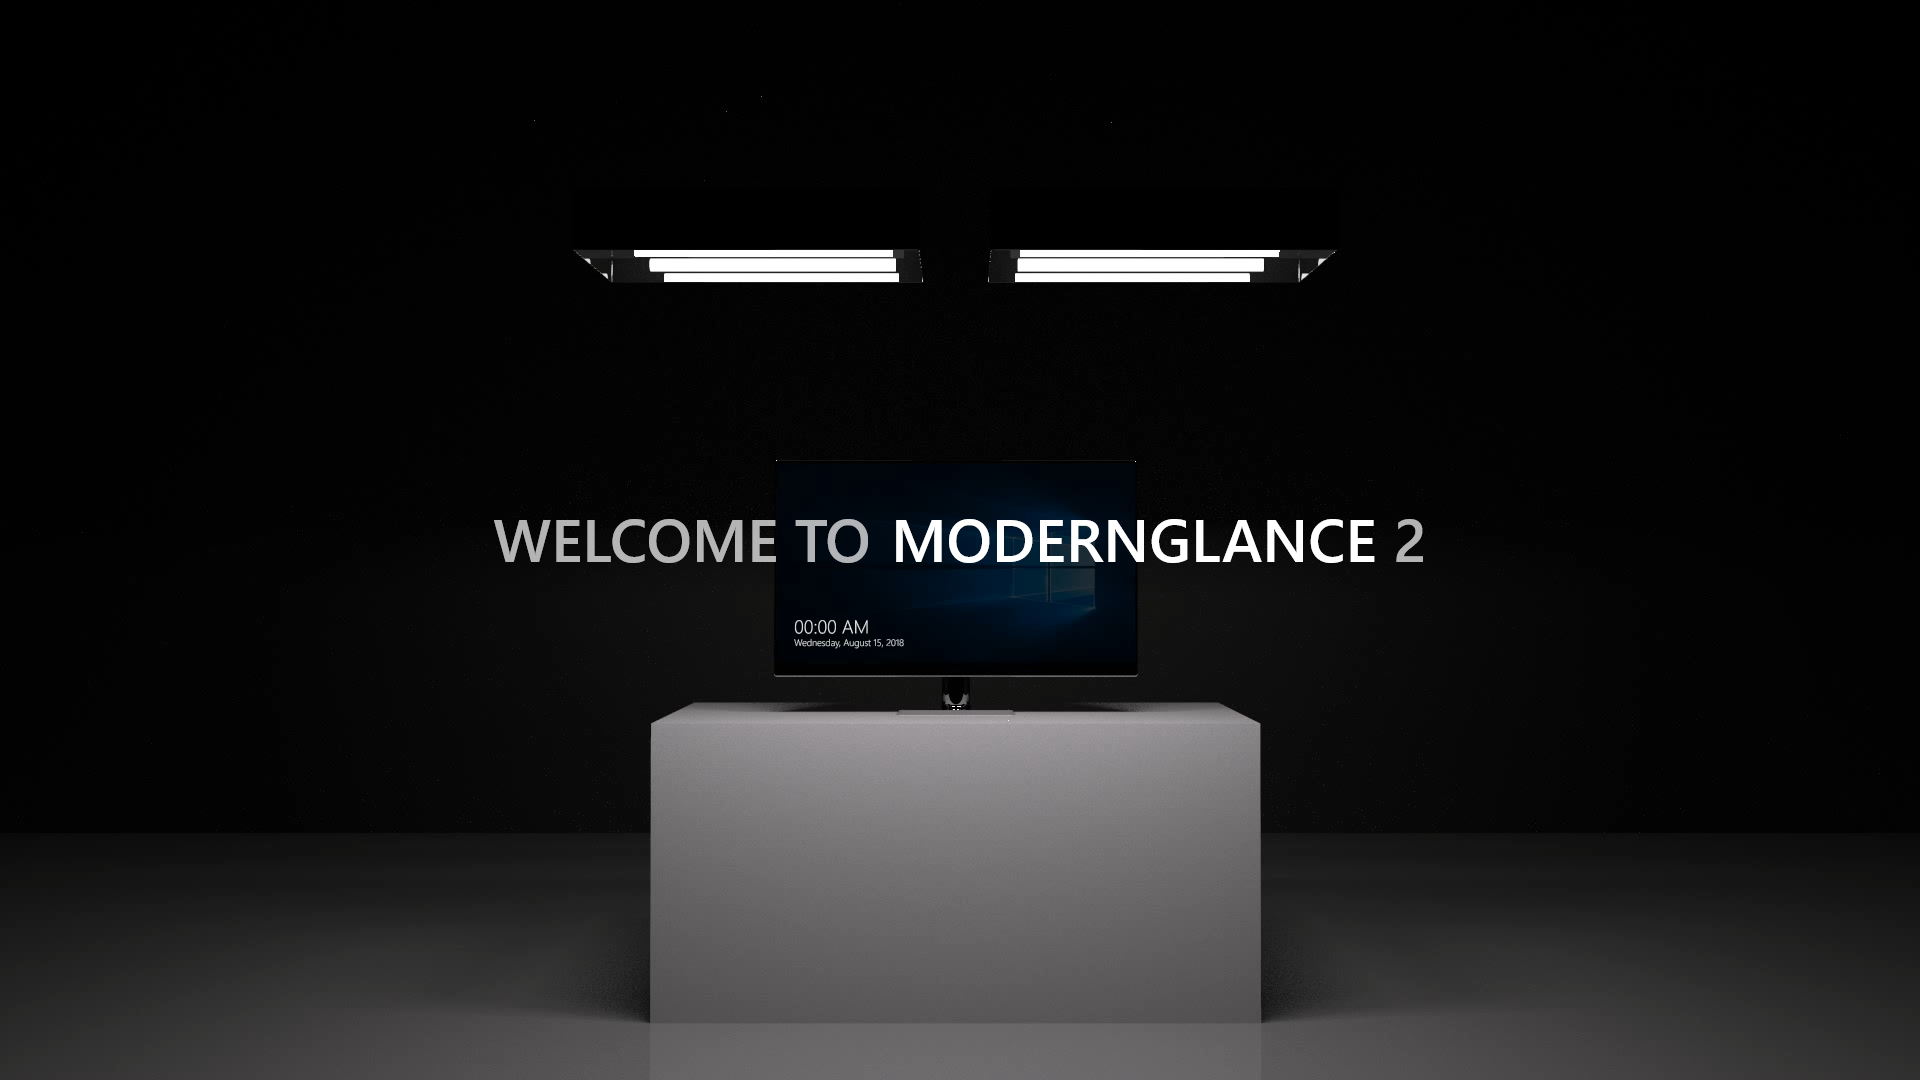 Preview image for ModernGlance